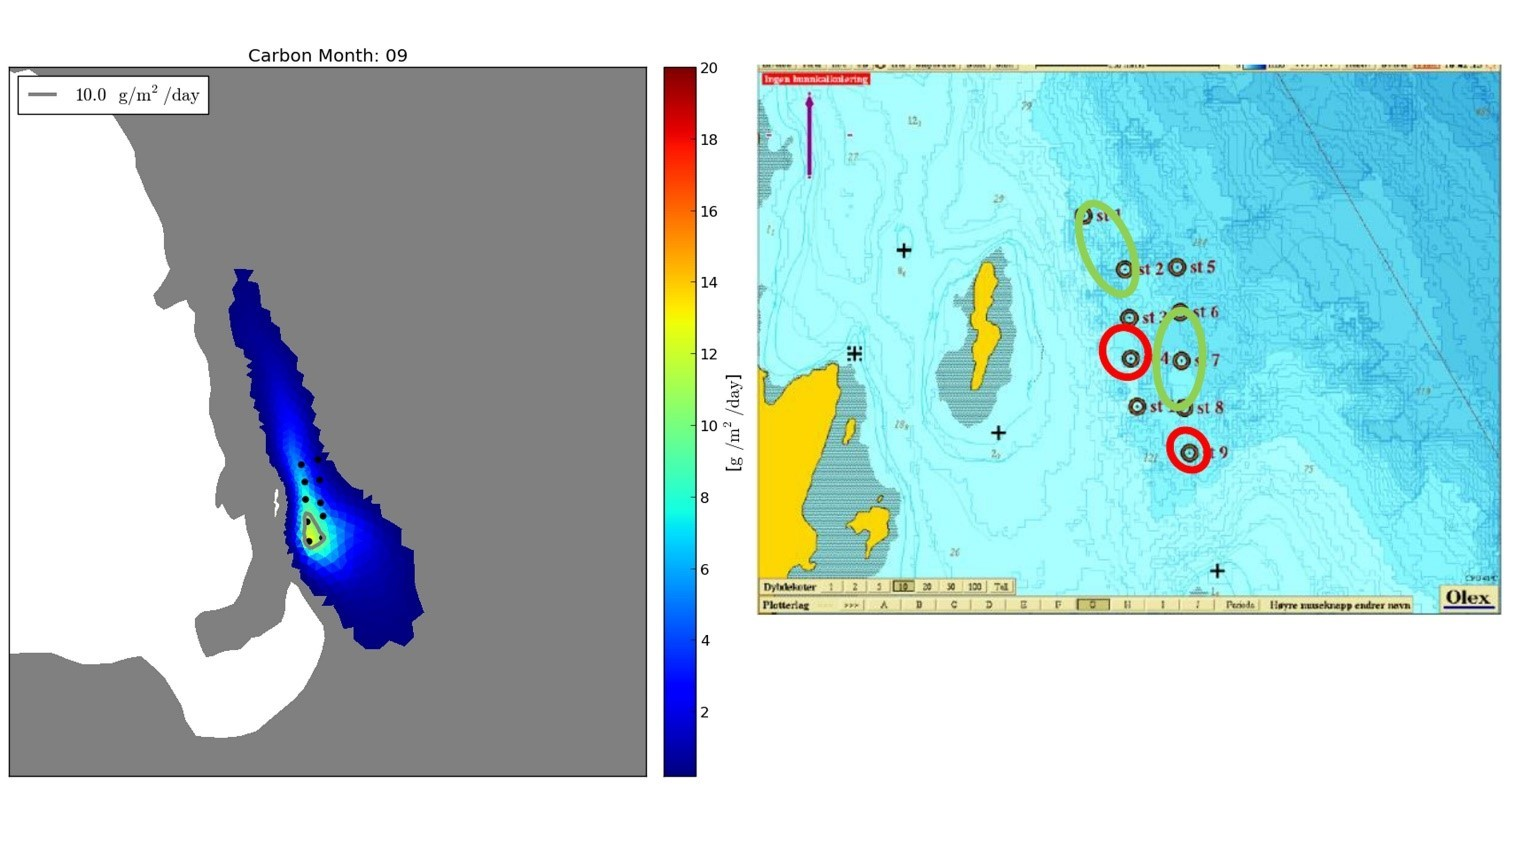 Figure 1:Comparison of sedimentation in model (left panel) and observed bottom conditions (right panel). The individual cages of the farm are indicated by black dots (left) and dark circles (right). Red circles (right panel) indicate grab samples with high amount of sediments. The model indicate higher sedimentation rates under the cages to the south and closer to land. This fish farm is located in Økssundet in Sagfjorden (Nordland).